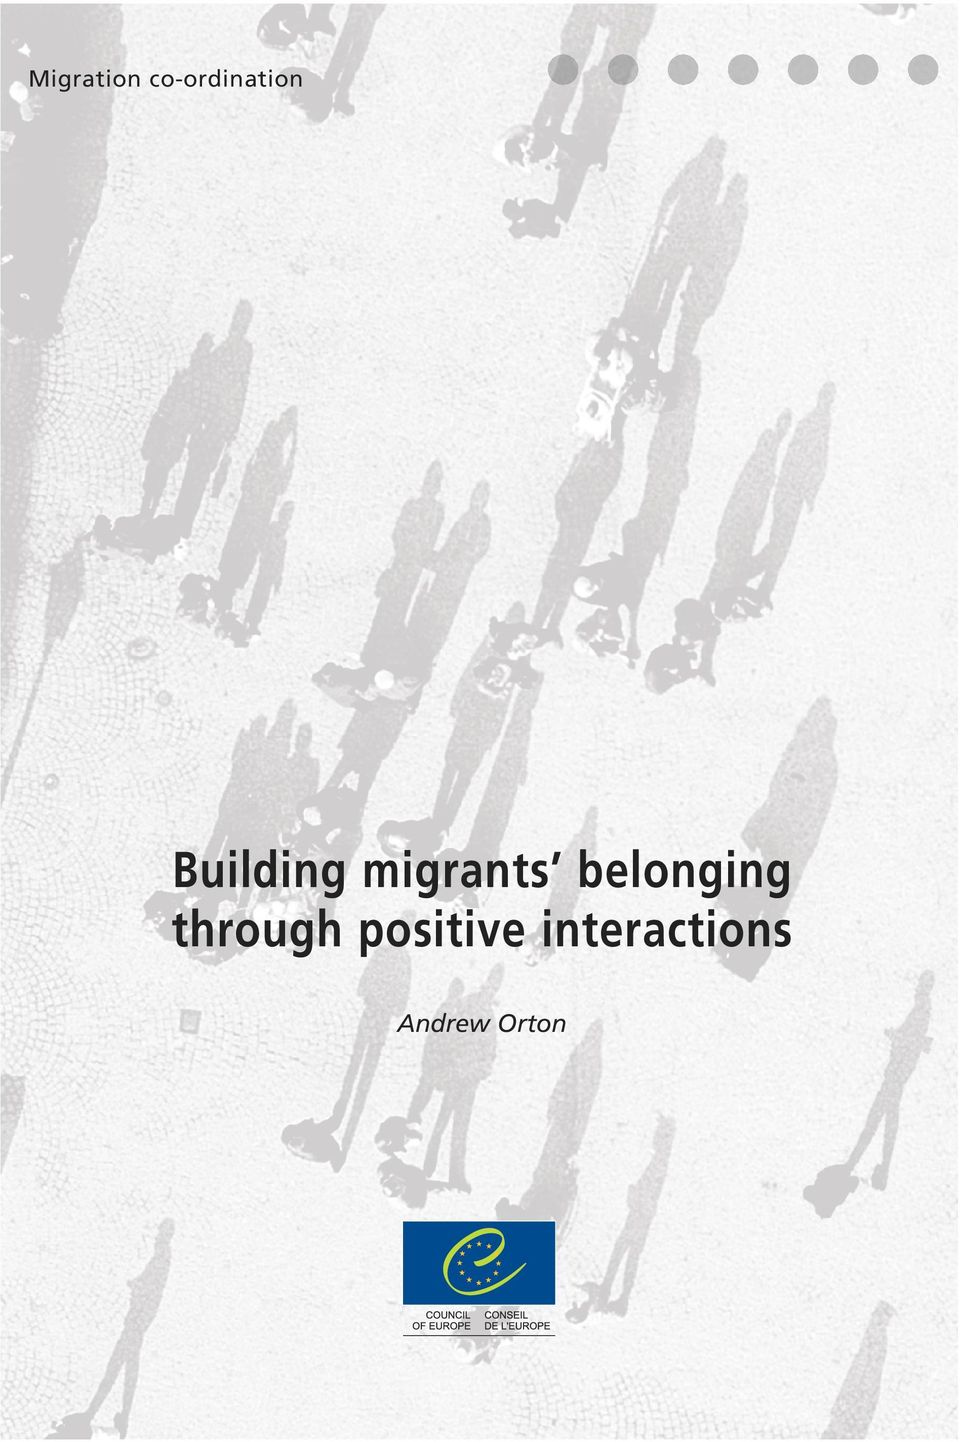 Building migrants belonging through positive interactions Andrew Orton www.coe.int The Council of Europe has 47 member states, covering virtually the entire continent of Europe.